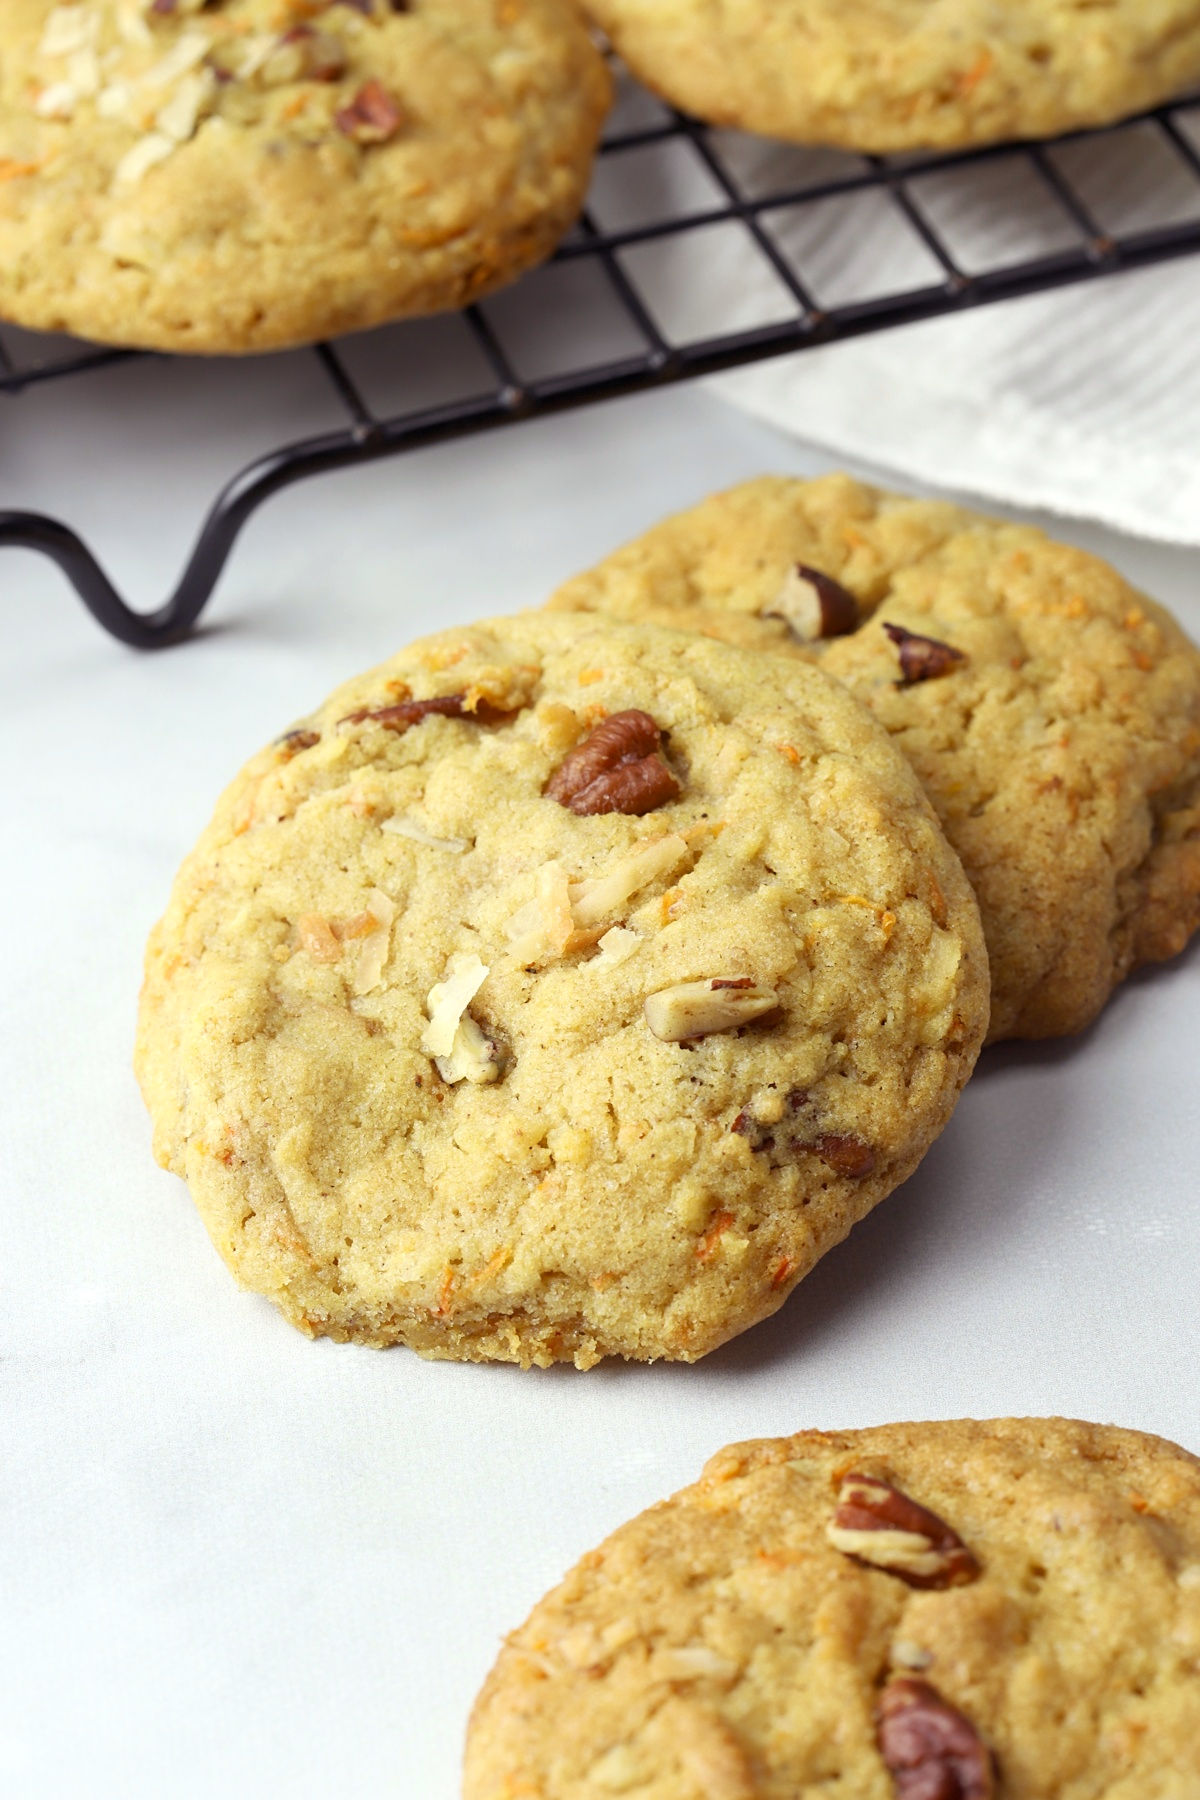 Cookie filled with pecans and shredded coconut.